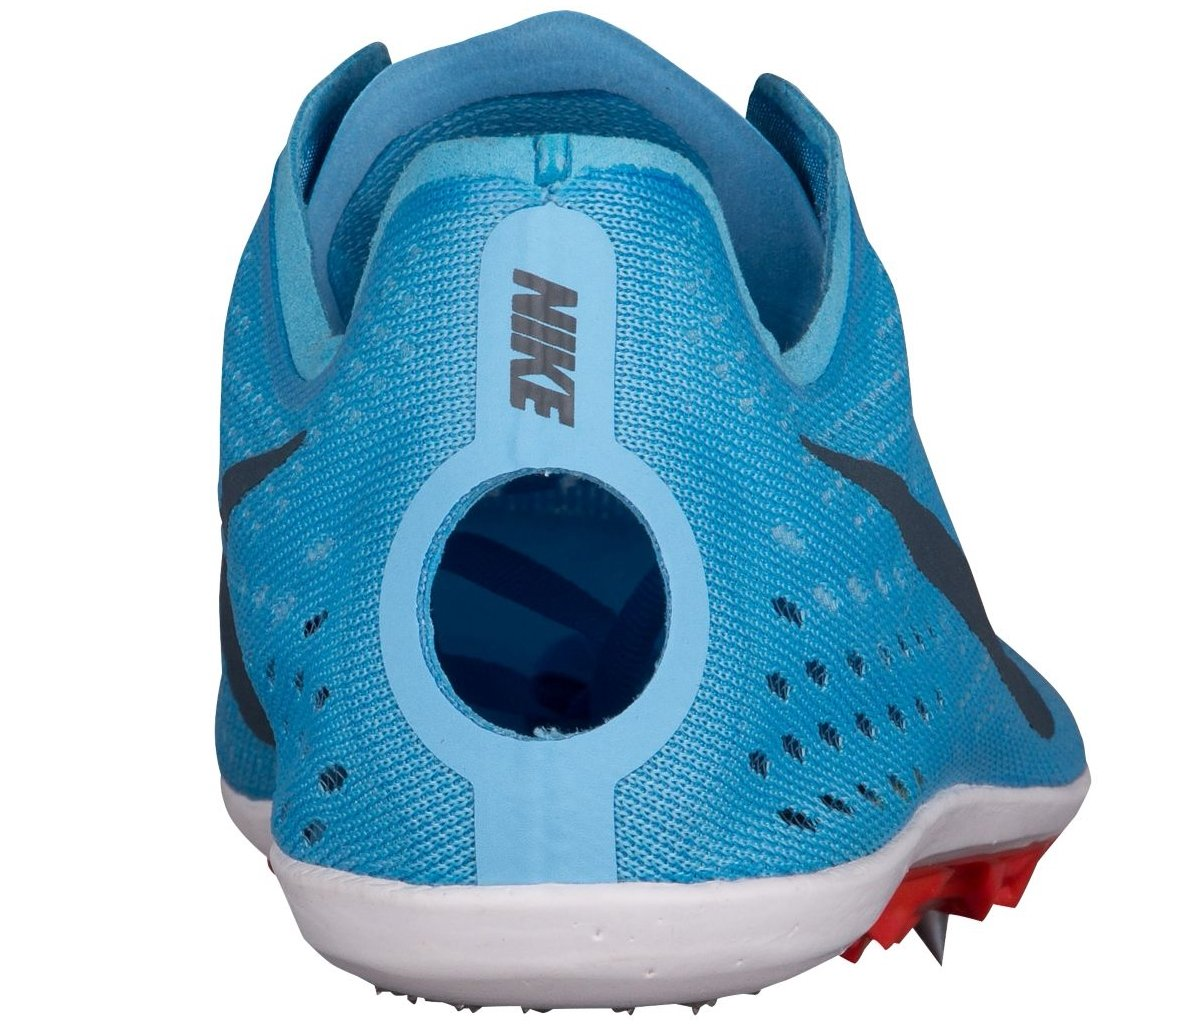 new arrival 4f505 a1f42 ... Nike Zoom Victory Elite 2, Scarpe Running Unisex-Adulto, Blu (Football  blu ...